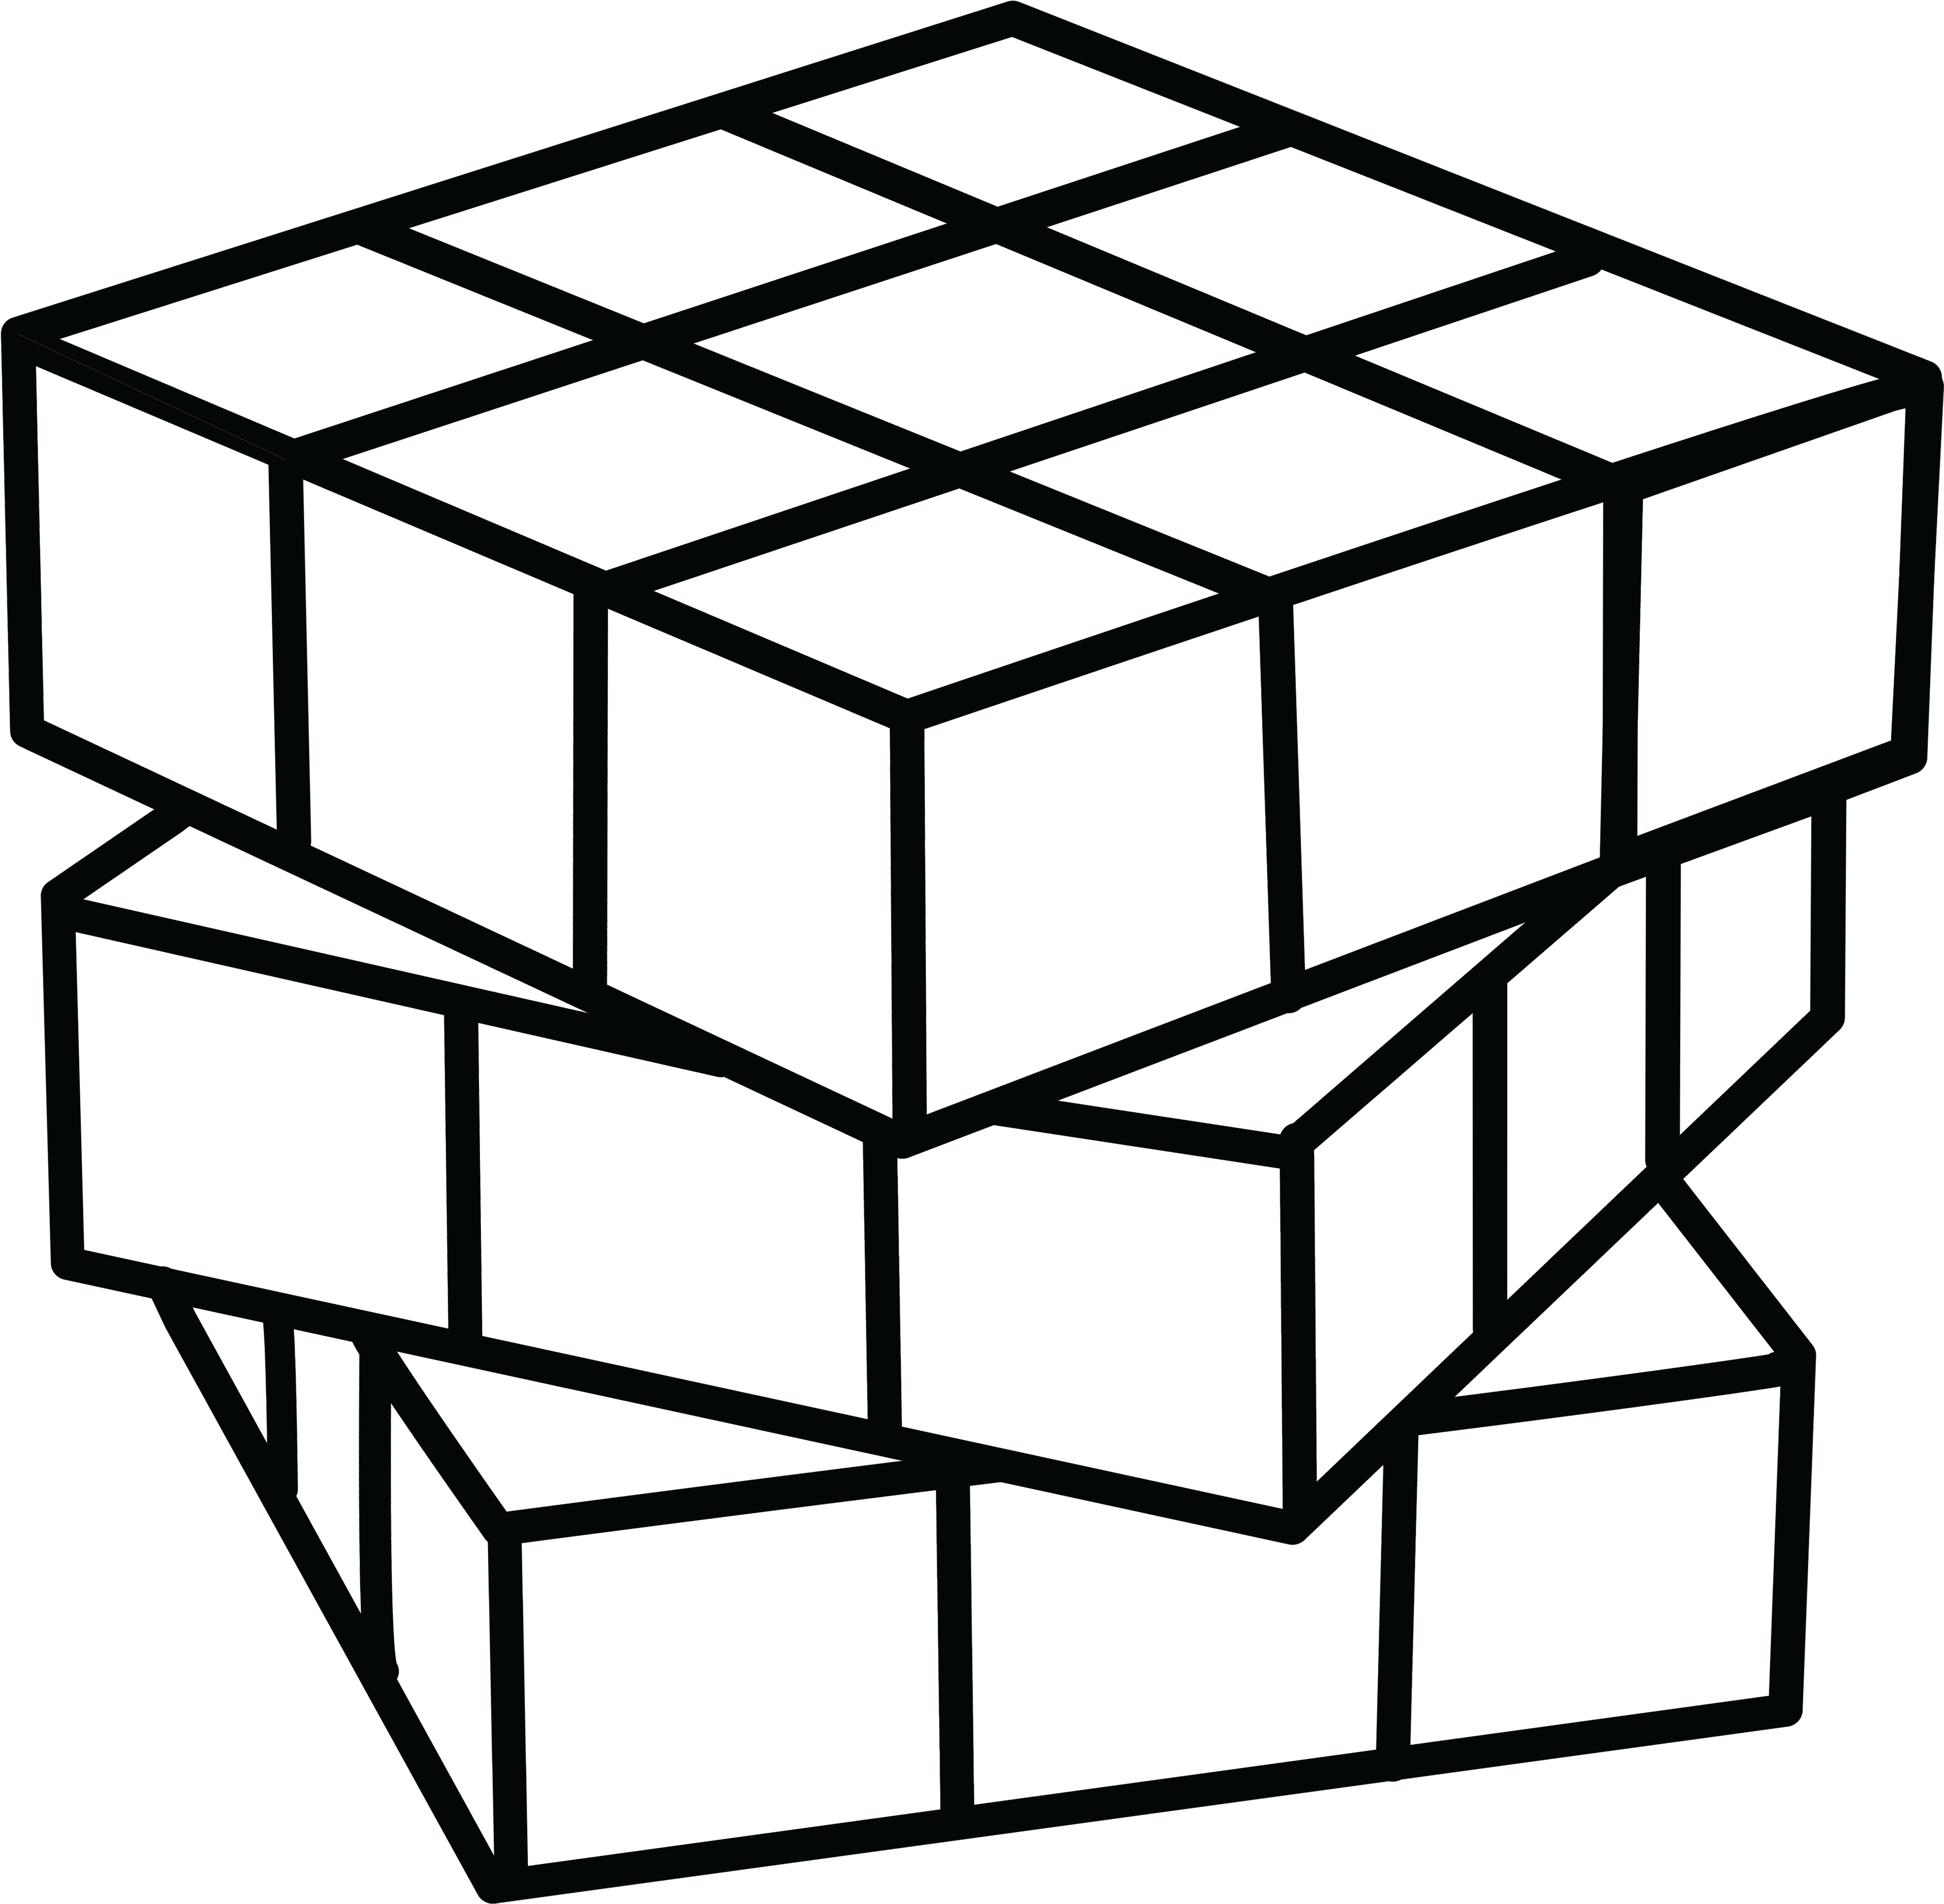 Clipart coloring pages svg black and white Cube Clipart Coloring Page - Rubix Cube Coloring Pages - Png ... svg black and white